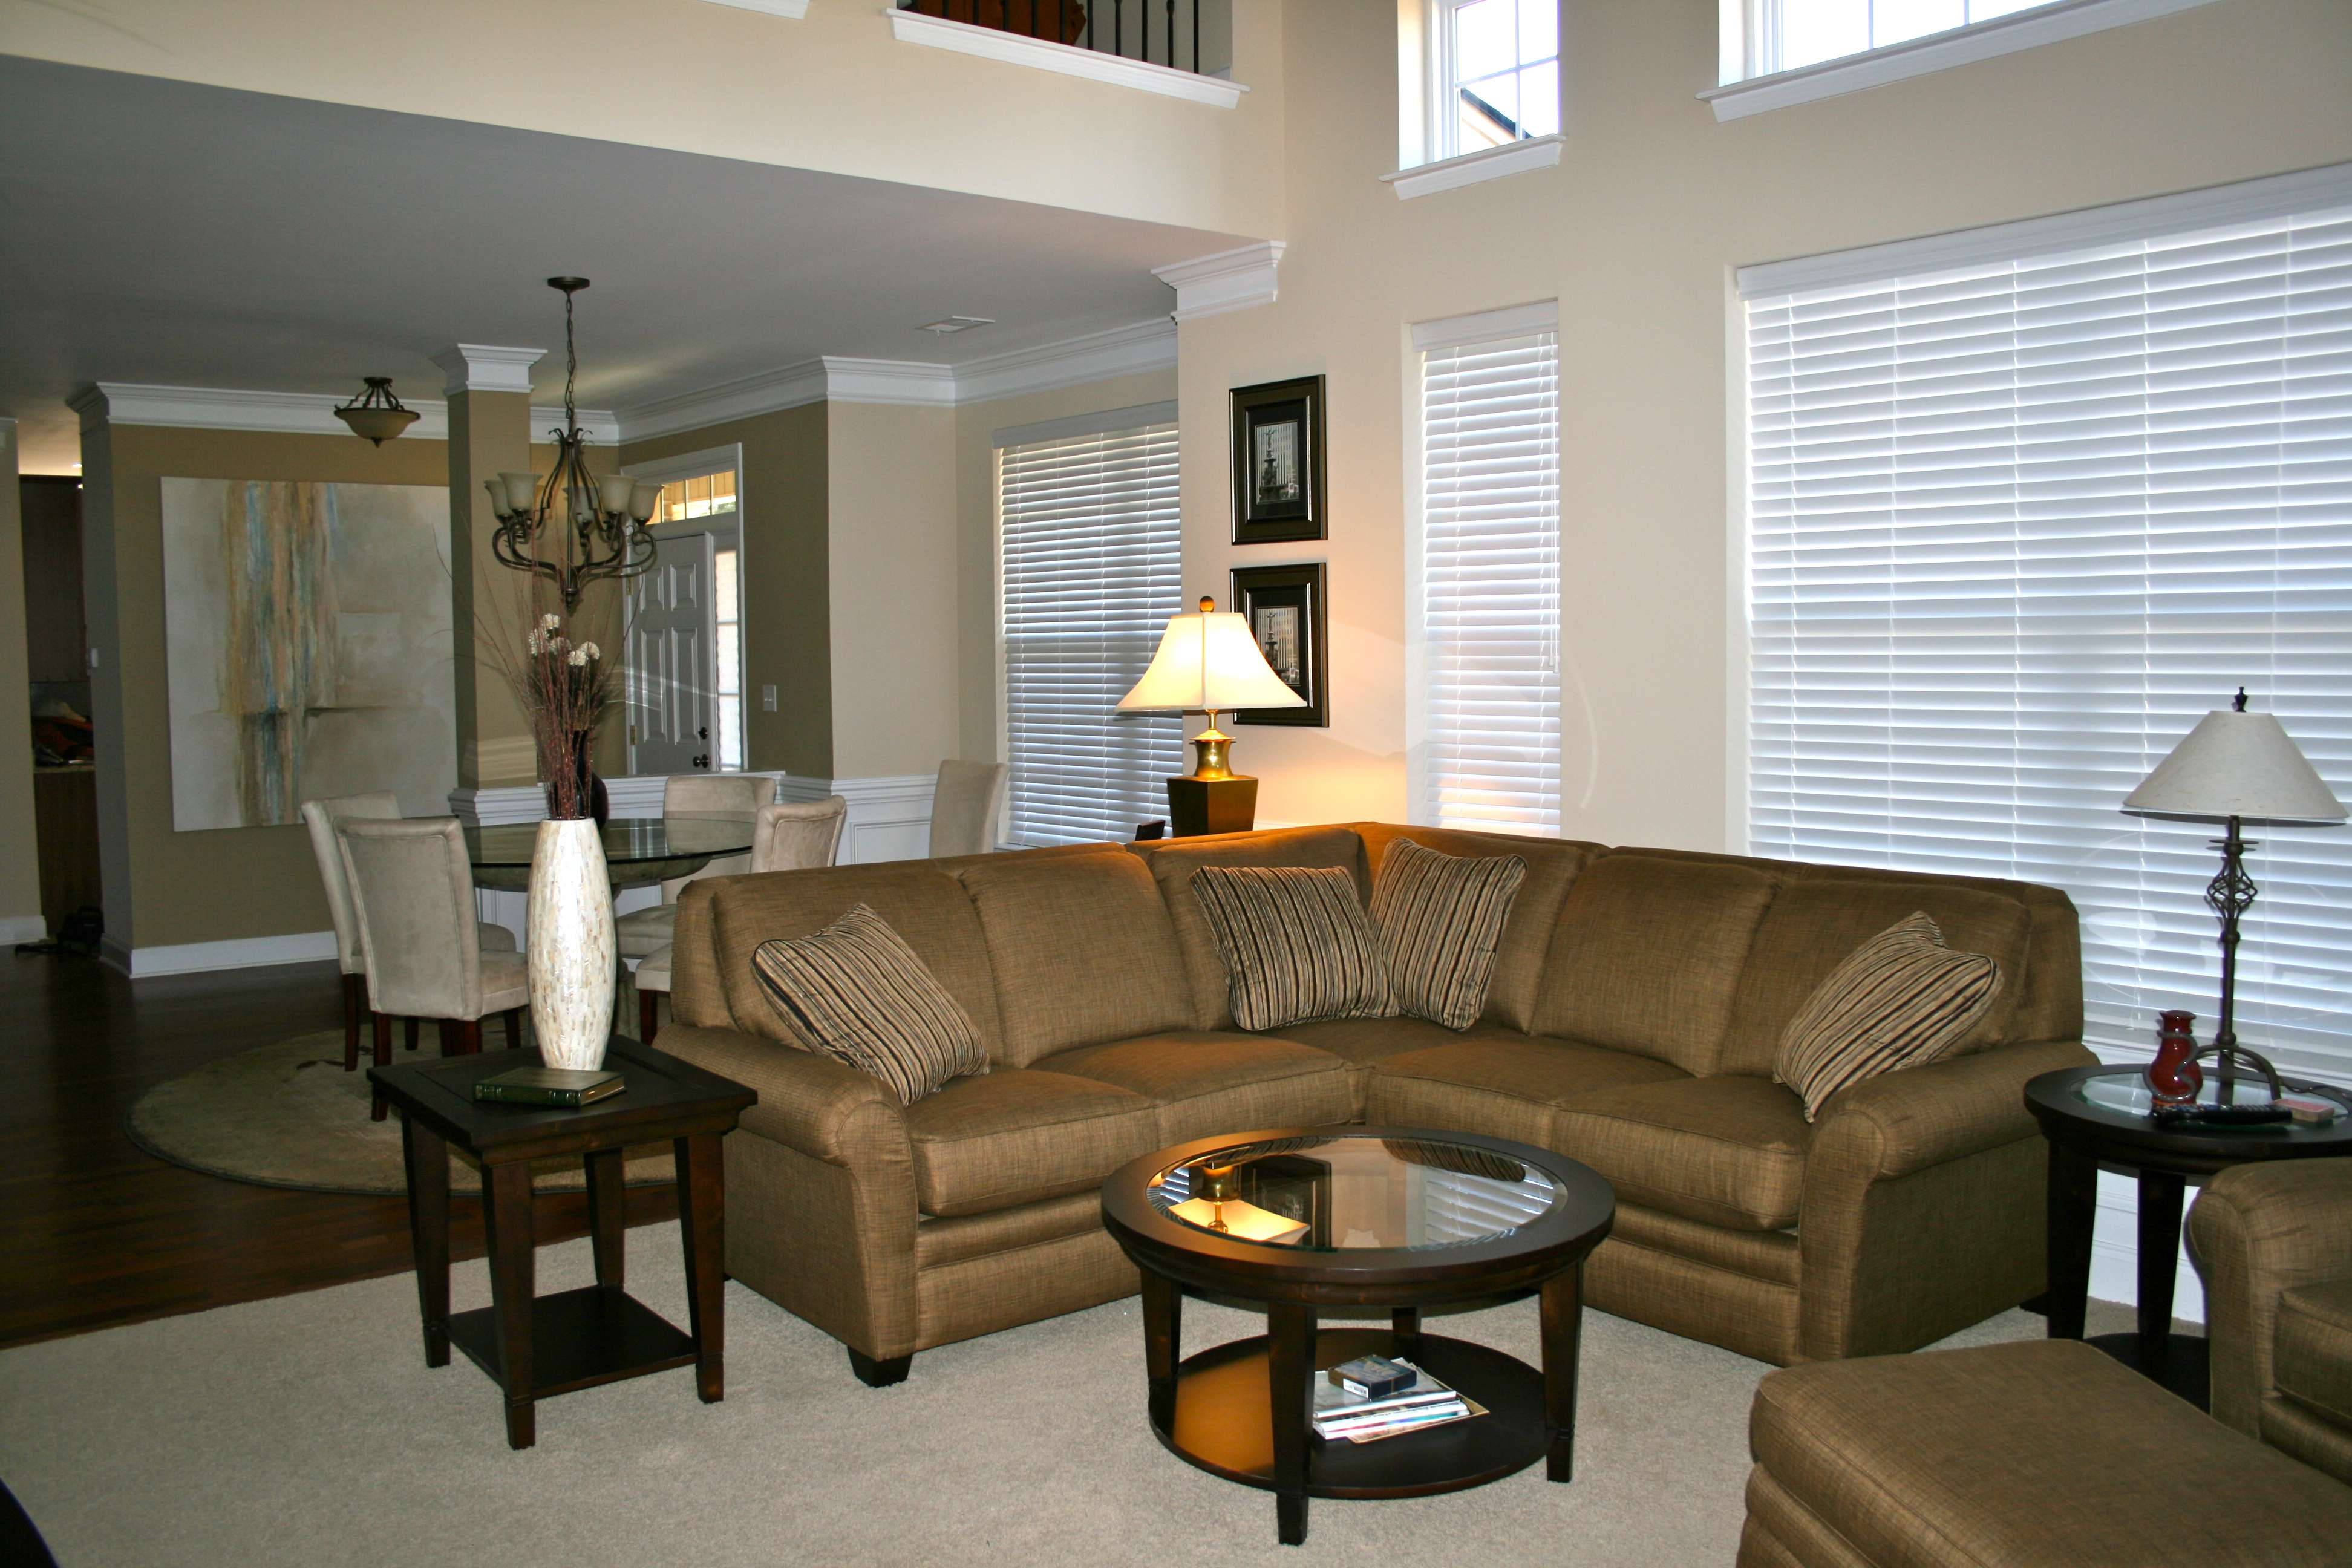 Furniture stores in greensboro nc - Cheap After With Greensboro Nc Furniture Stores